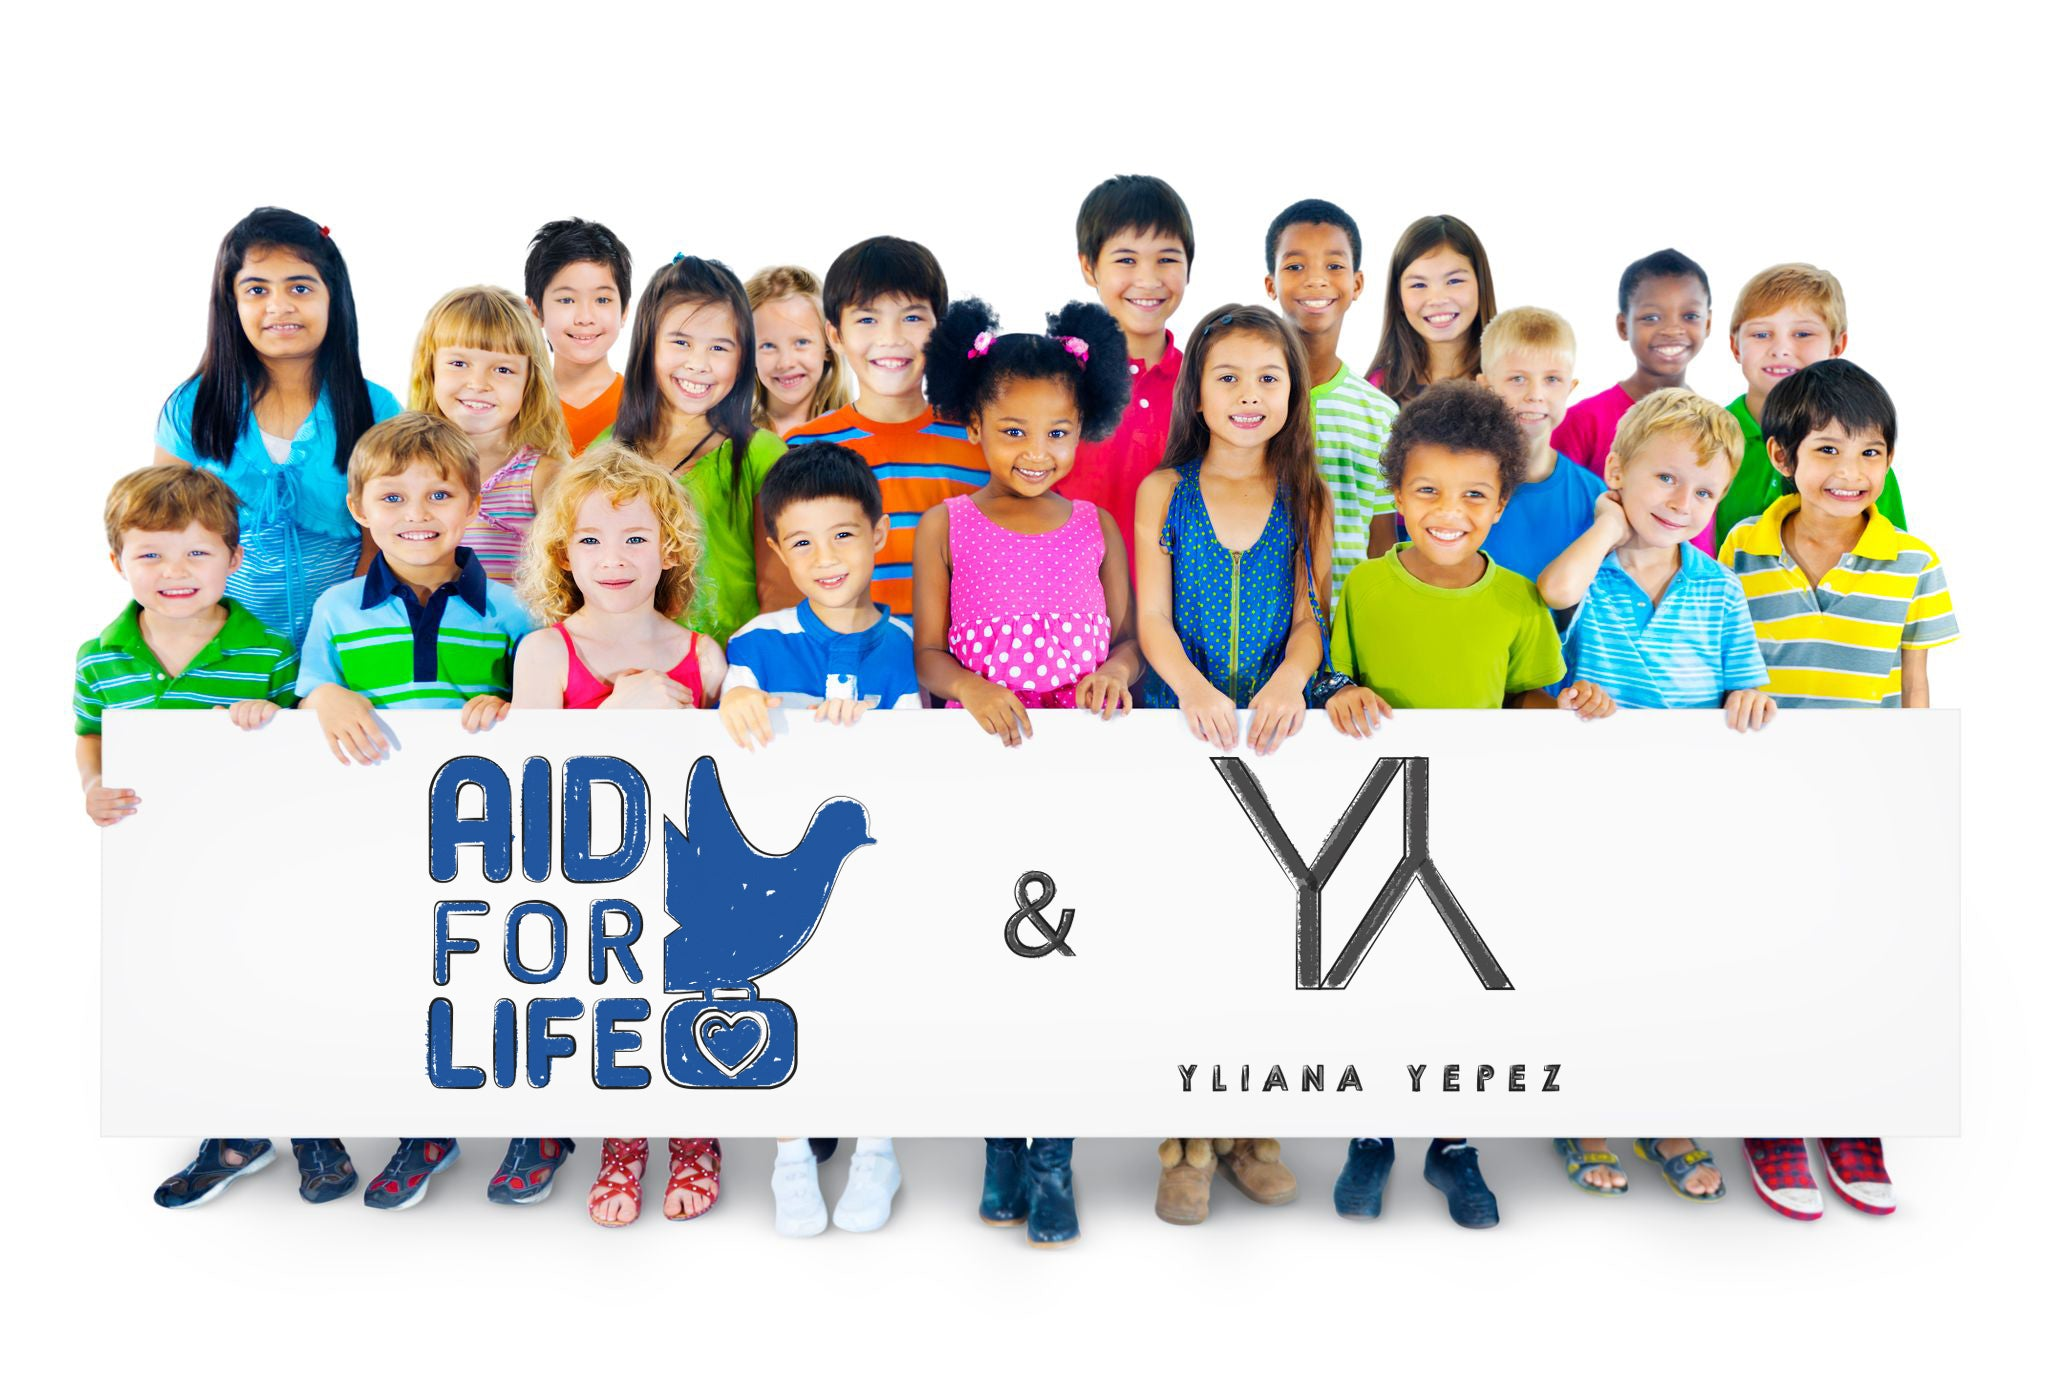 YLIANA YEPEZ Aid for Life